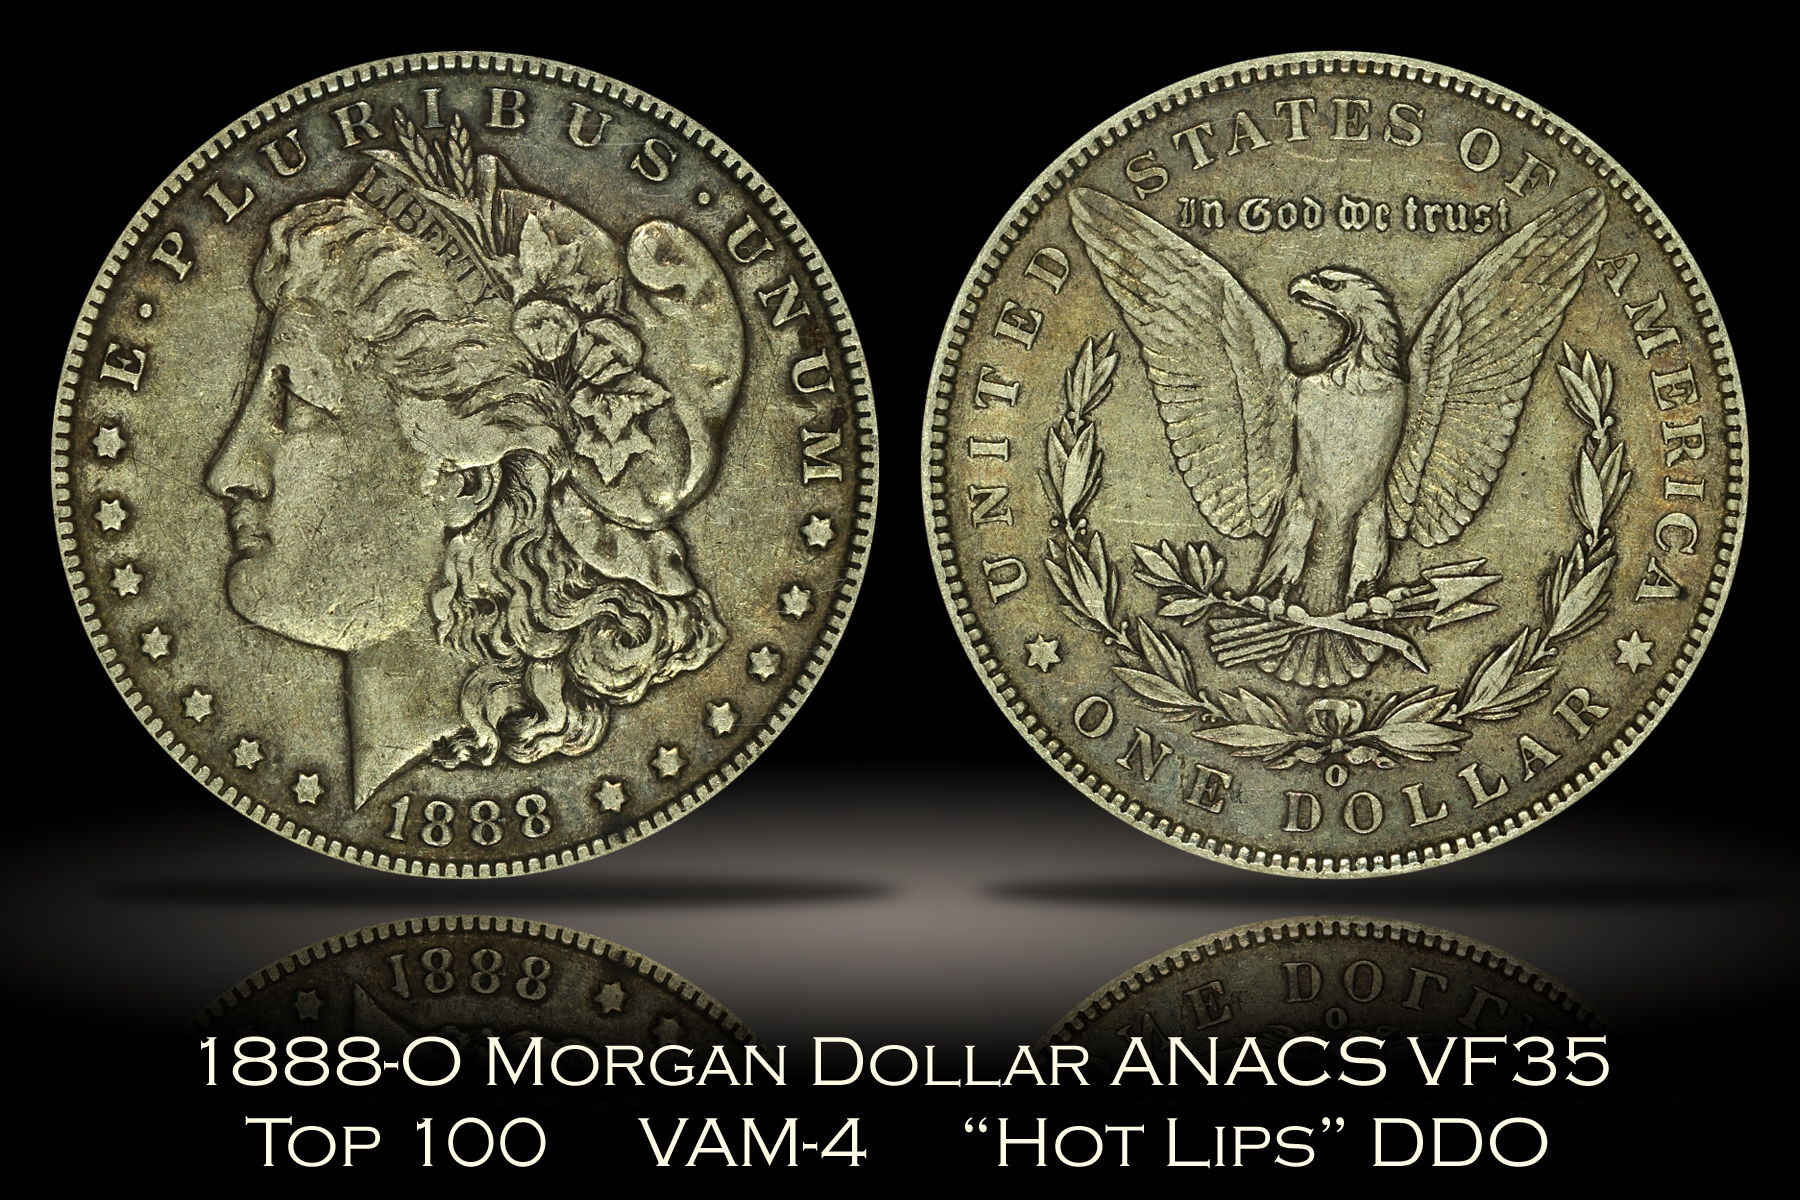 1888-O Morgan Dollar DDO Hot Lips ANACS VF35 VAM-4